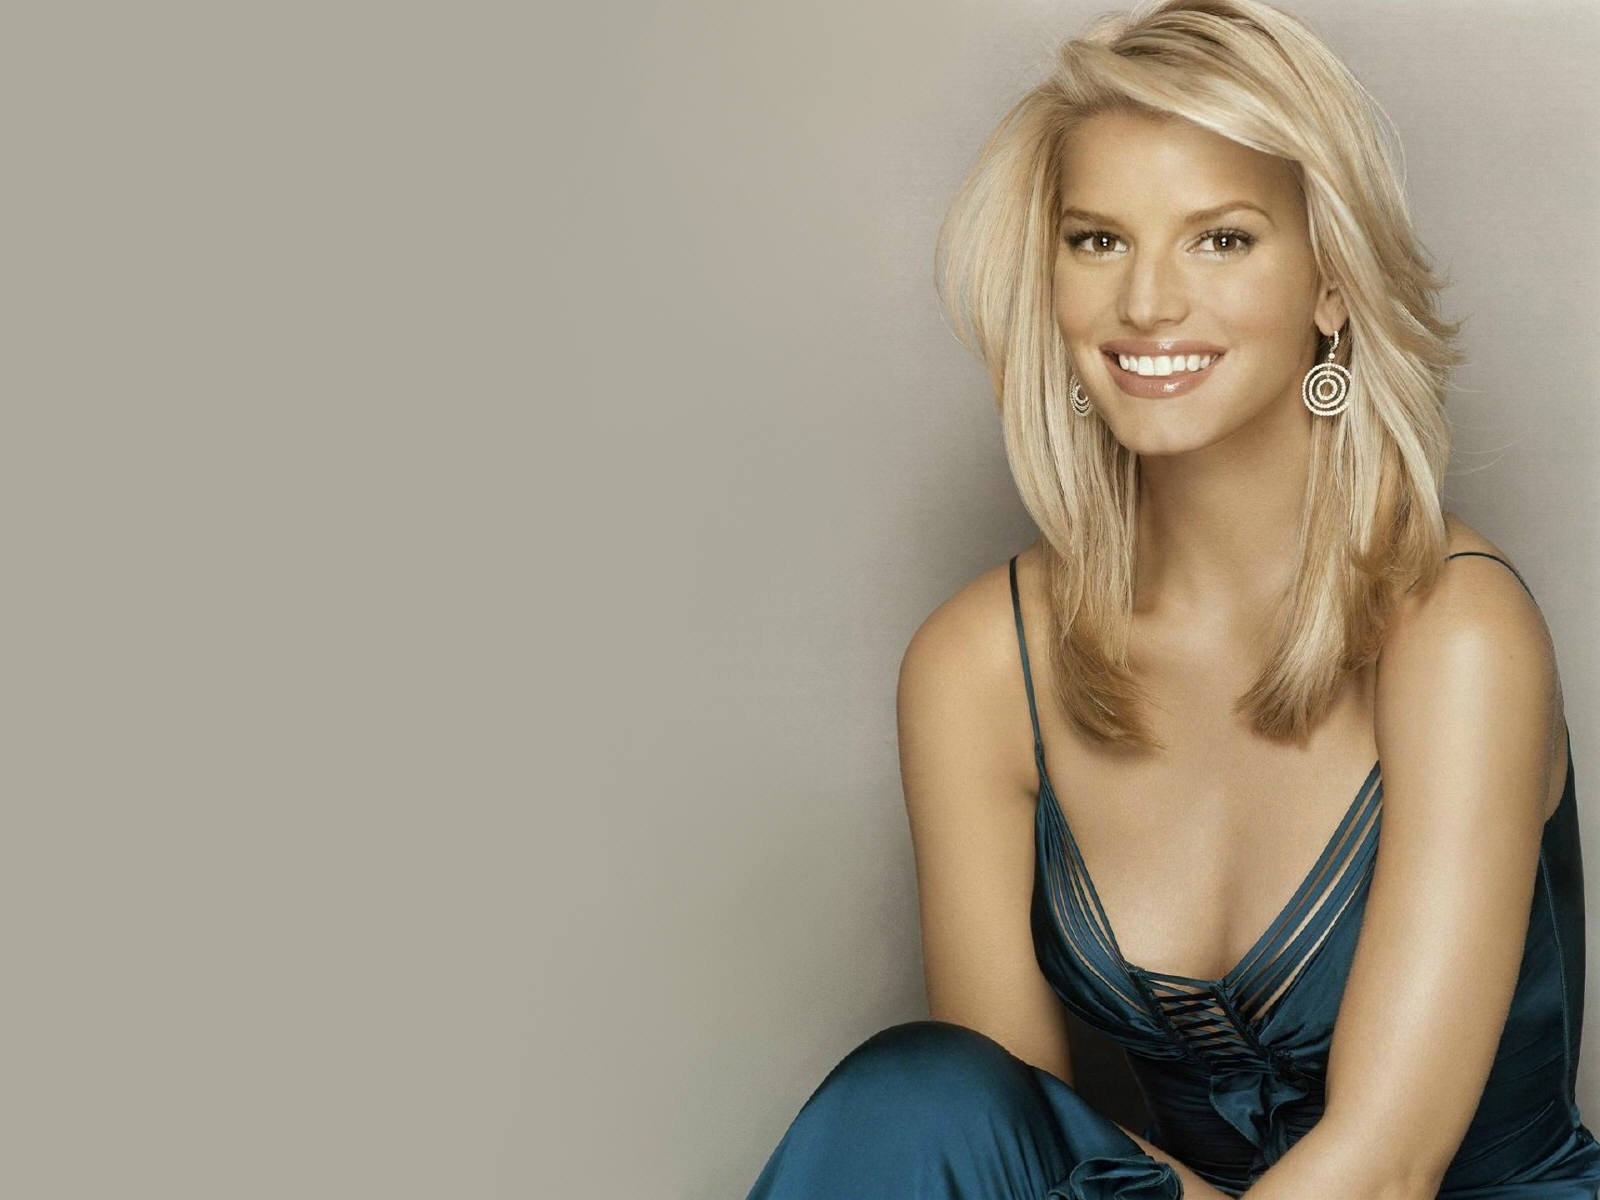 Wallpaper di Jessica Simpson in abito blu scuro